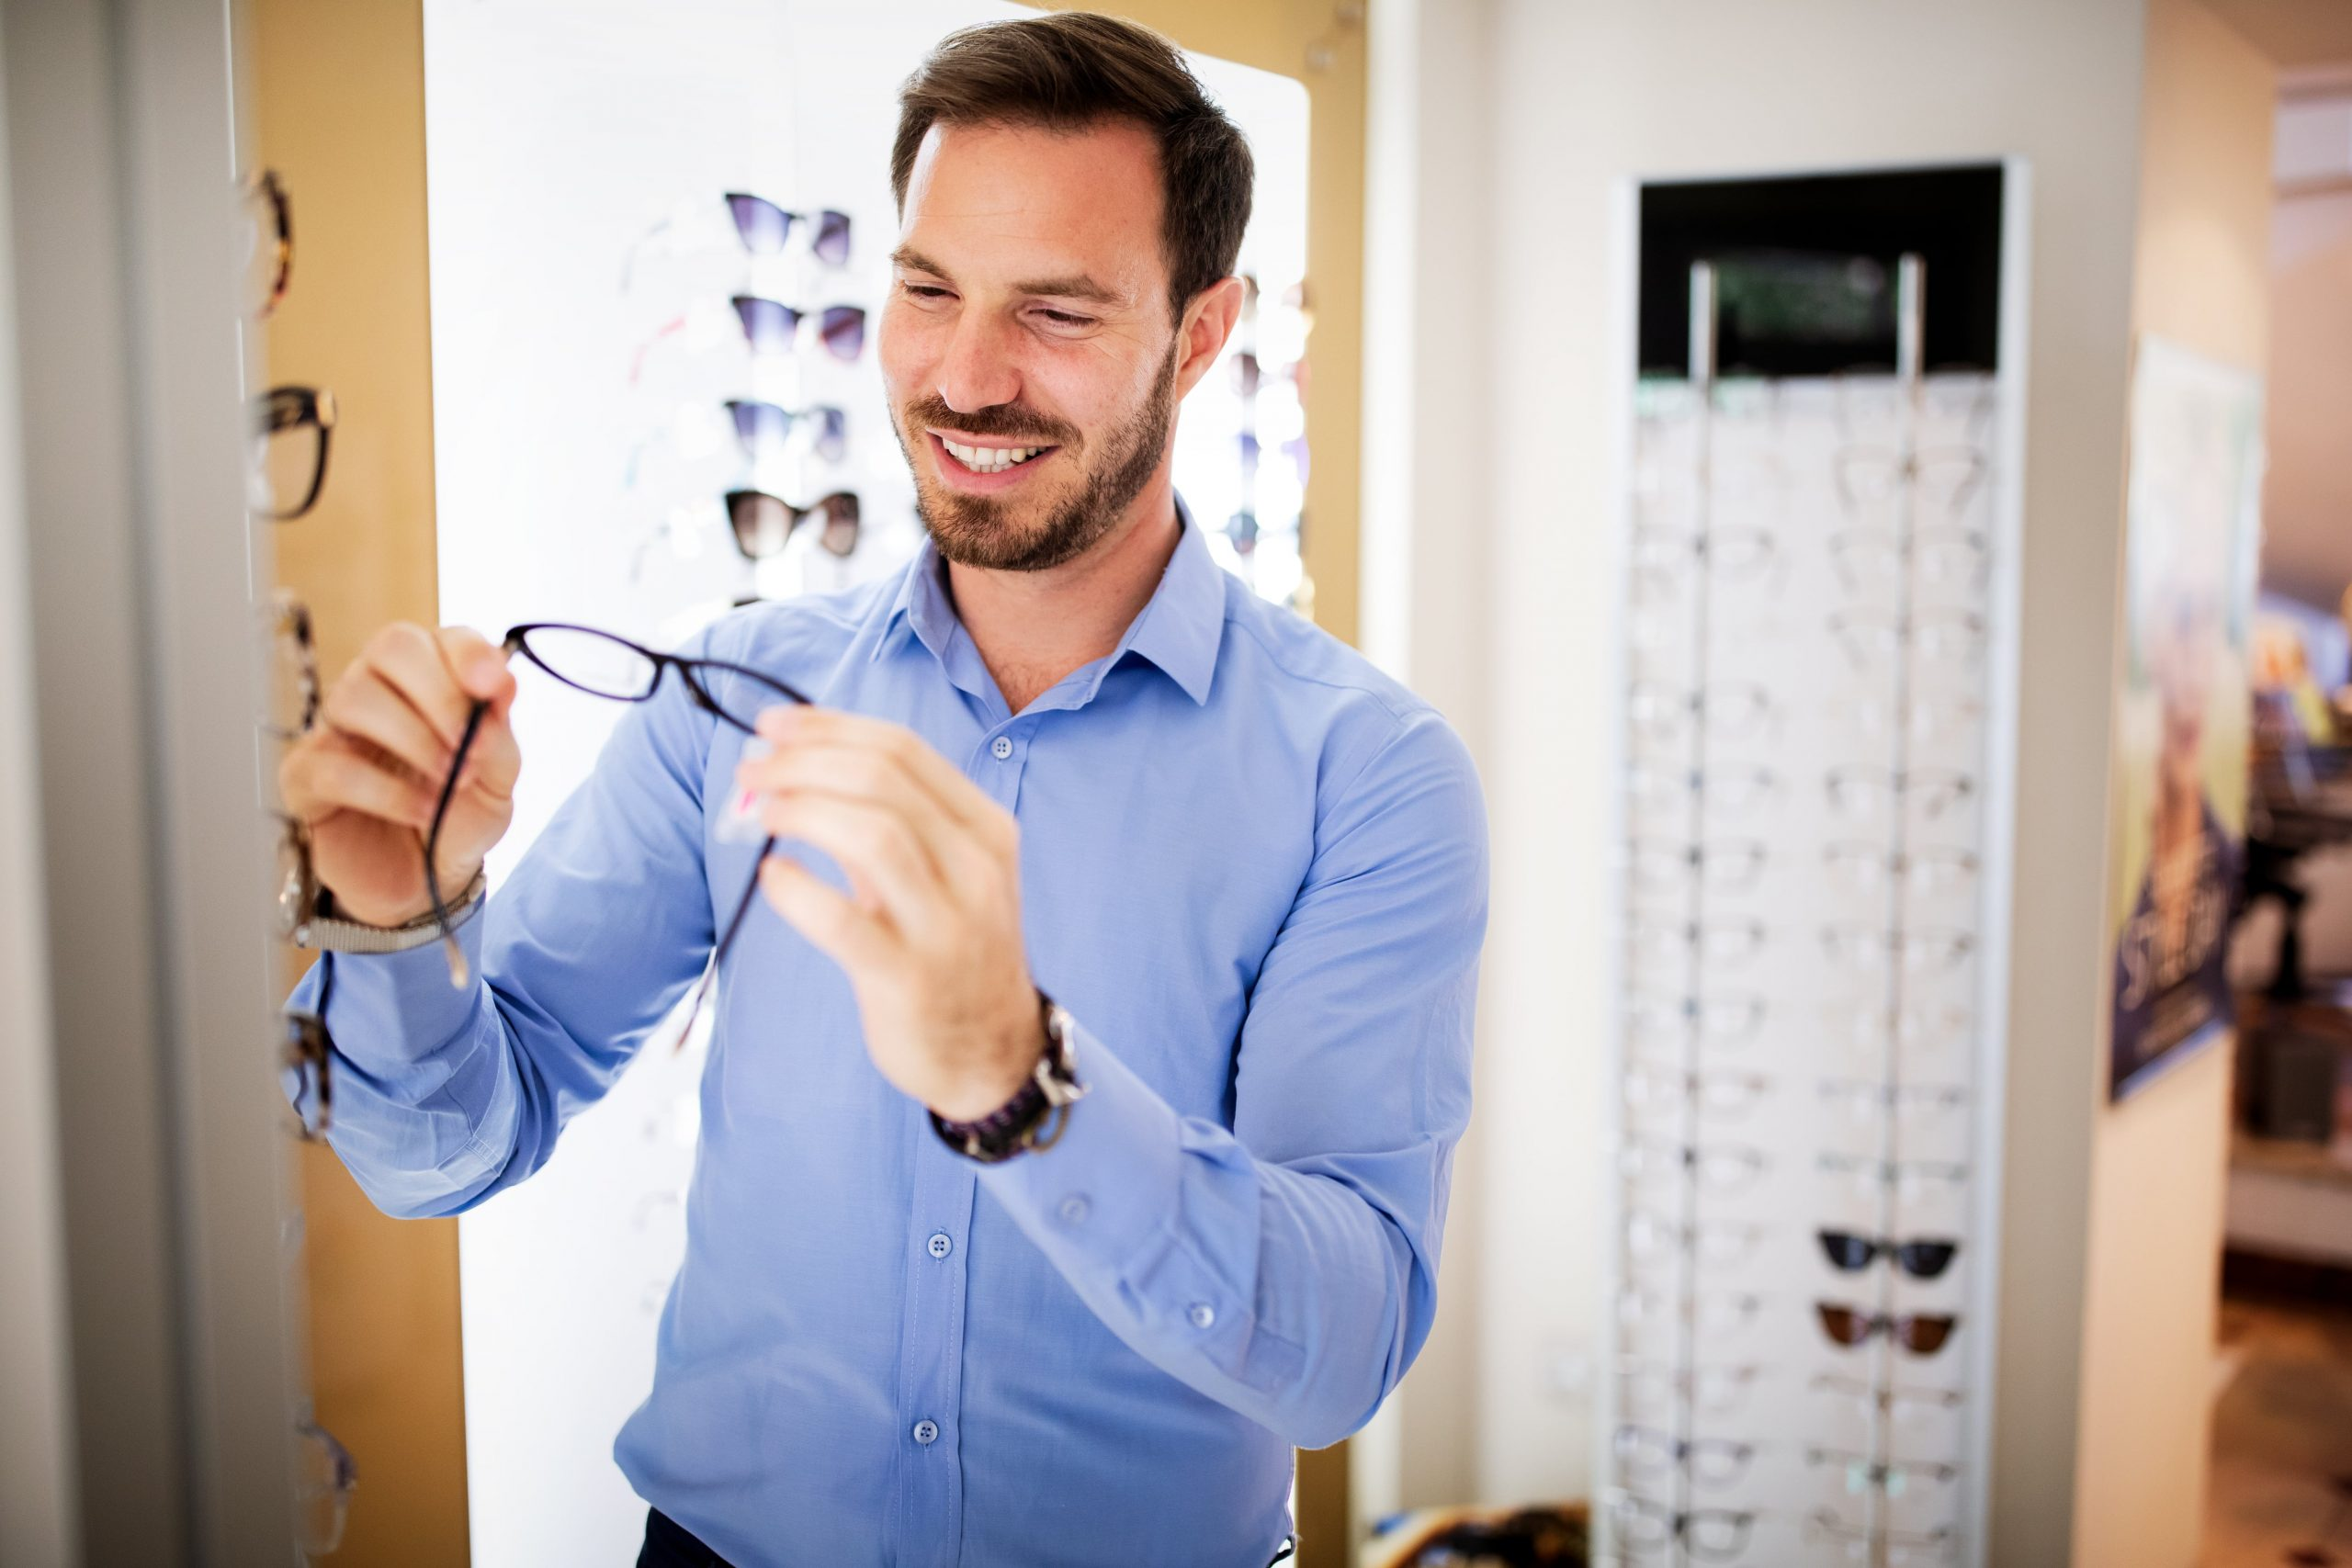 Health Care Eyesight And Vision Concept Happy Man Nsw47fq Min